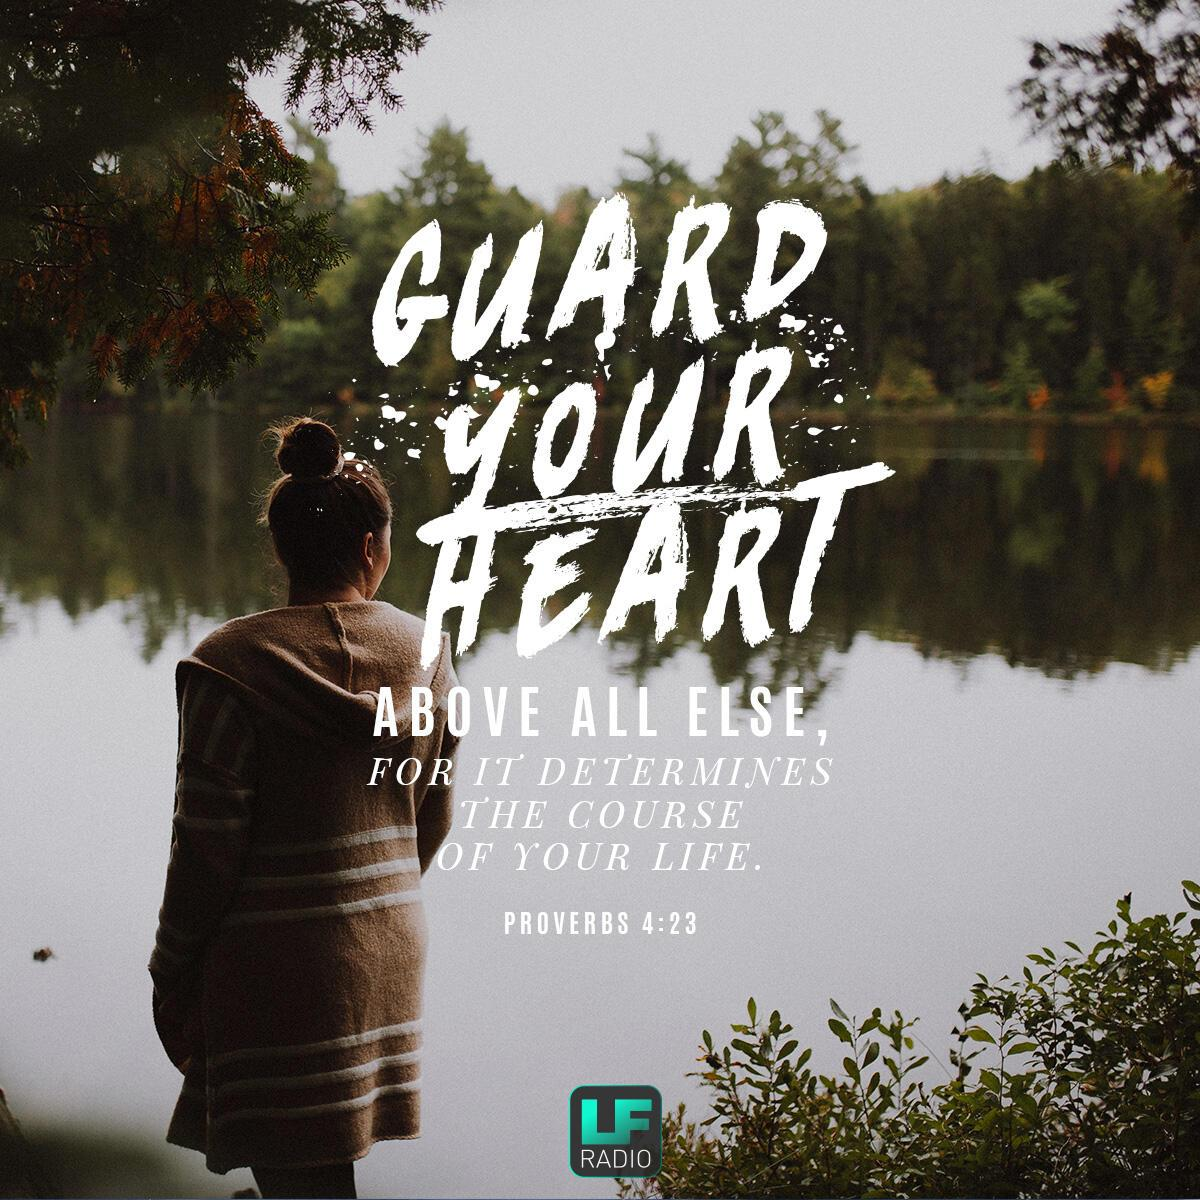 Proverbs 4:23 - Verse of the Day